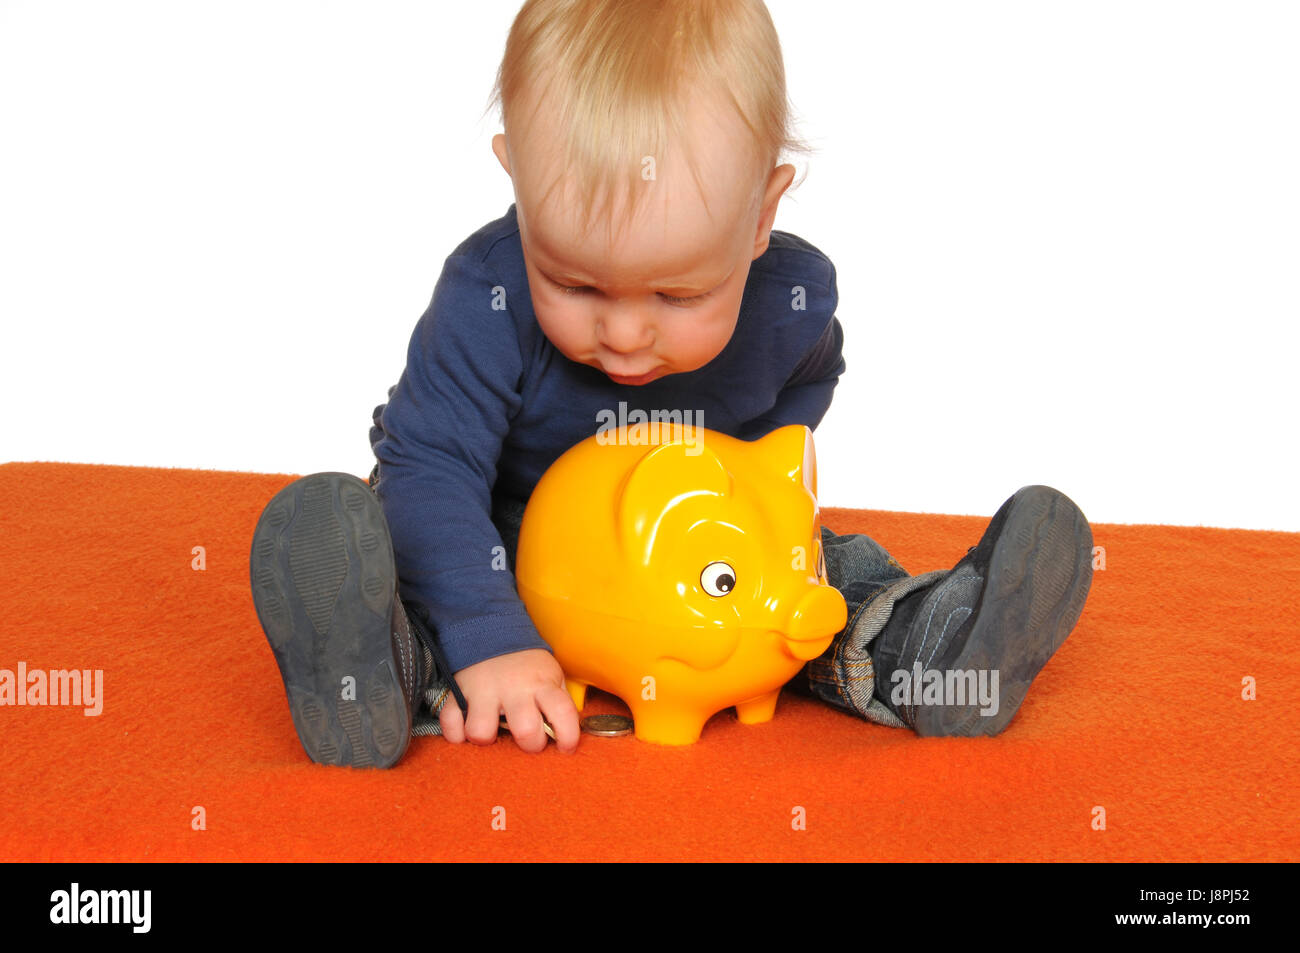 save, baby, piggybank, young, younger, child, provision, isolated, scrabble, Stock Photo